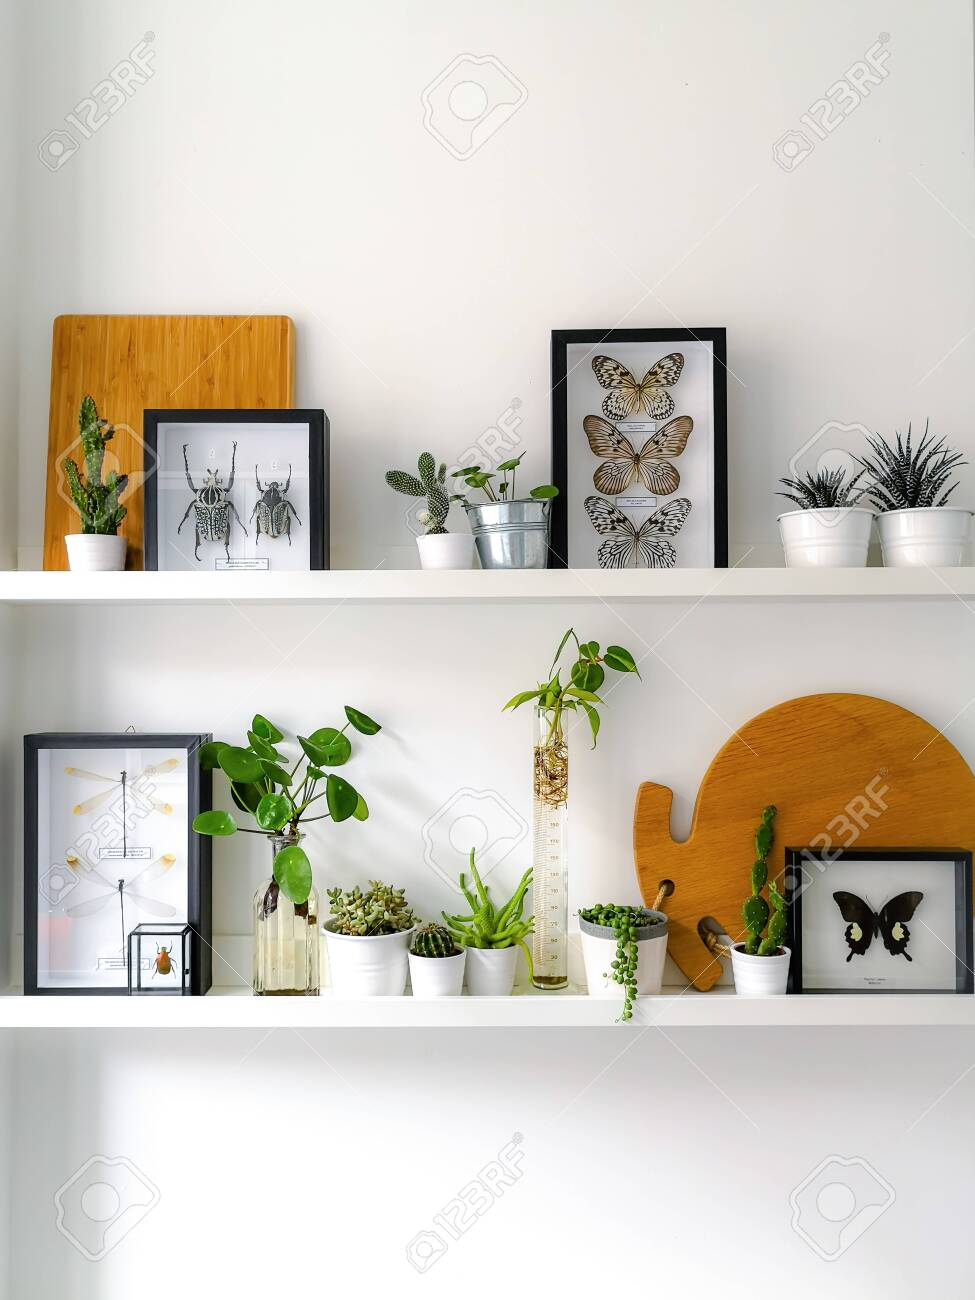 White hanging shelves with numerous plants and framed taxidermy insect art such as butterflies, beetles and dragonflies - 127147151